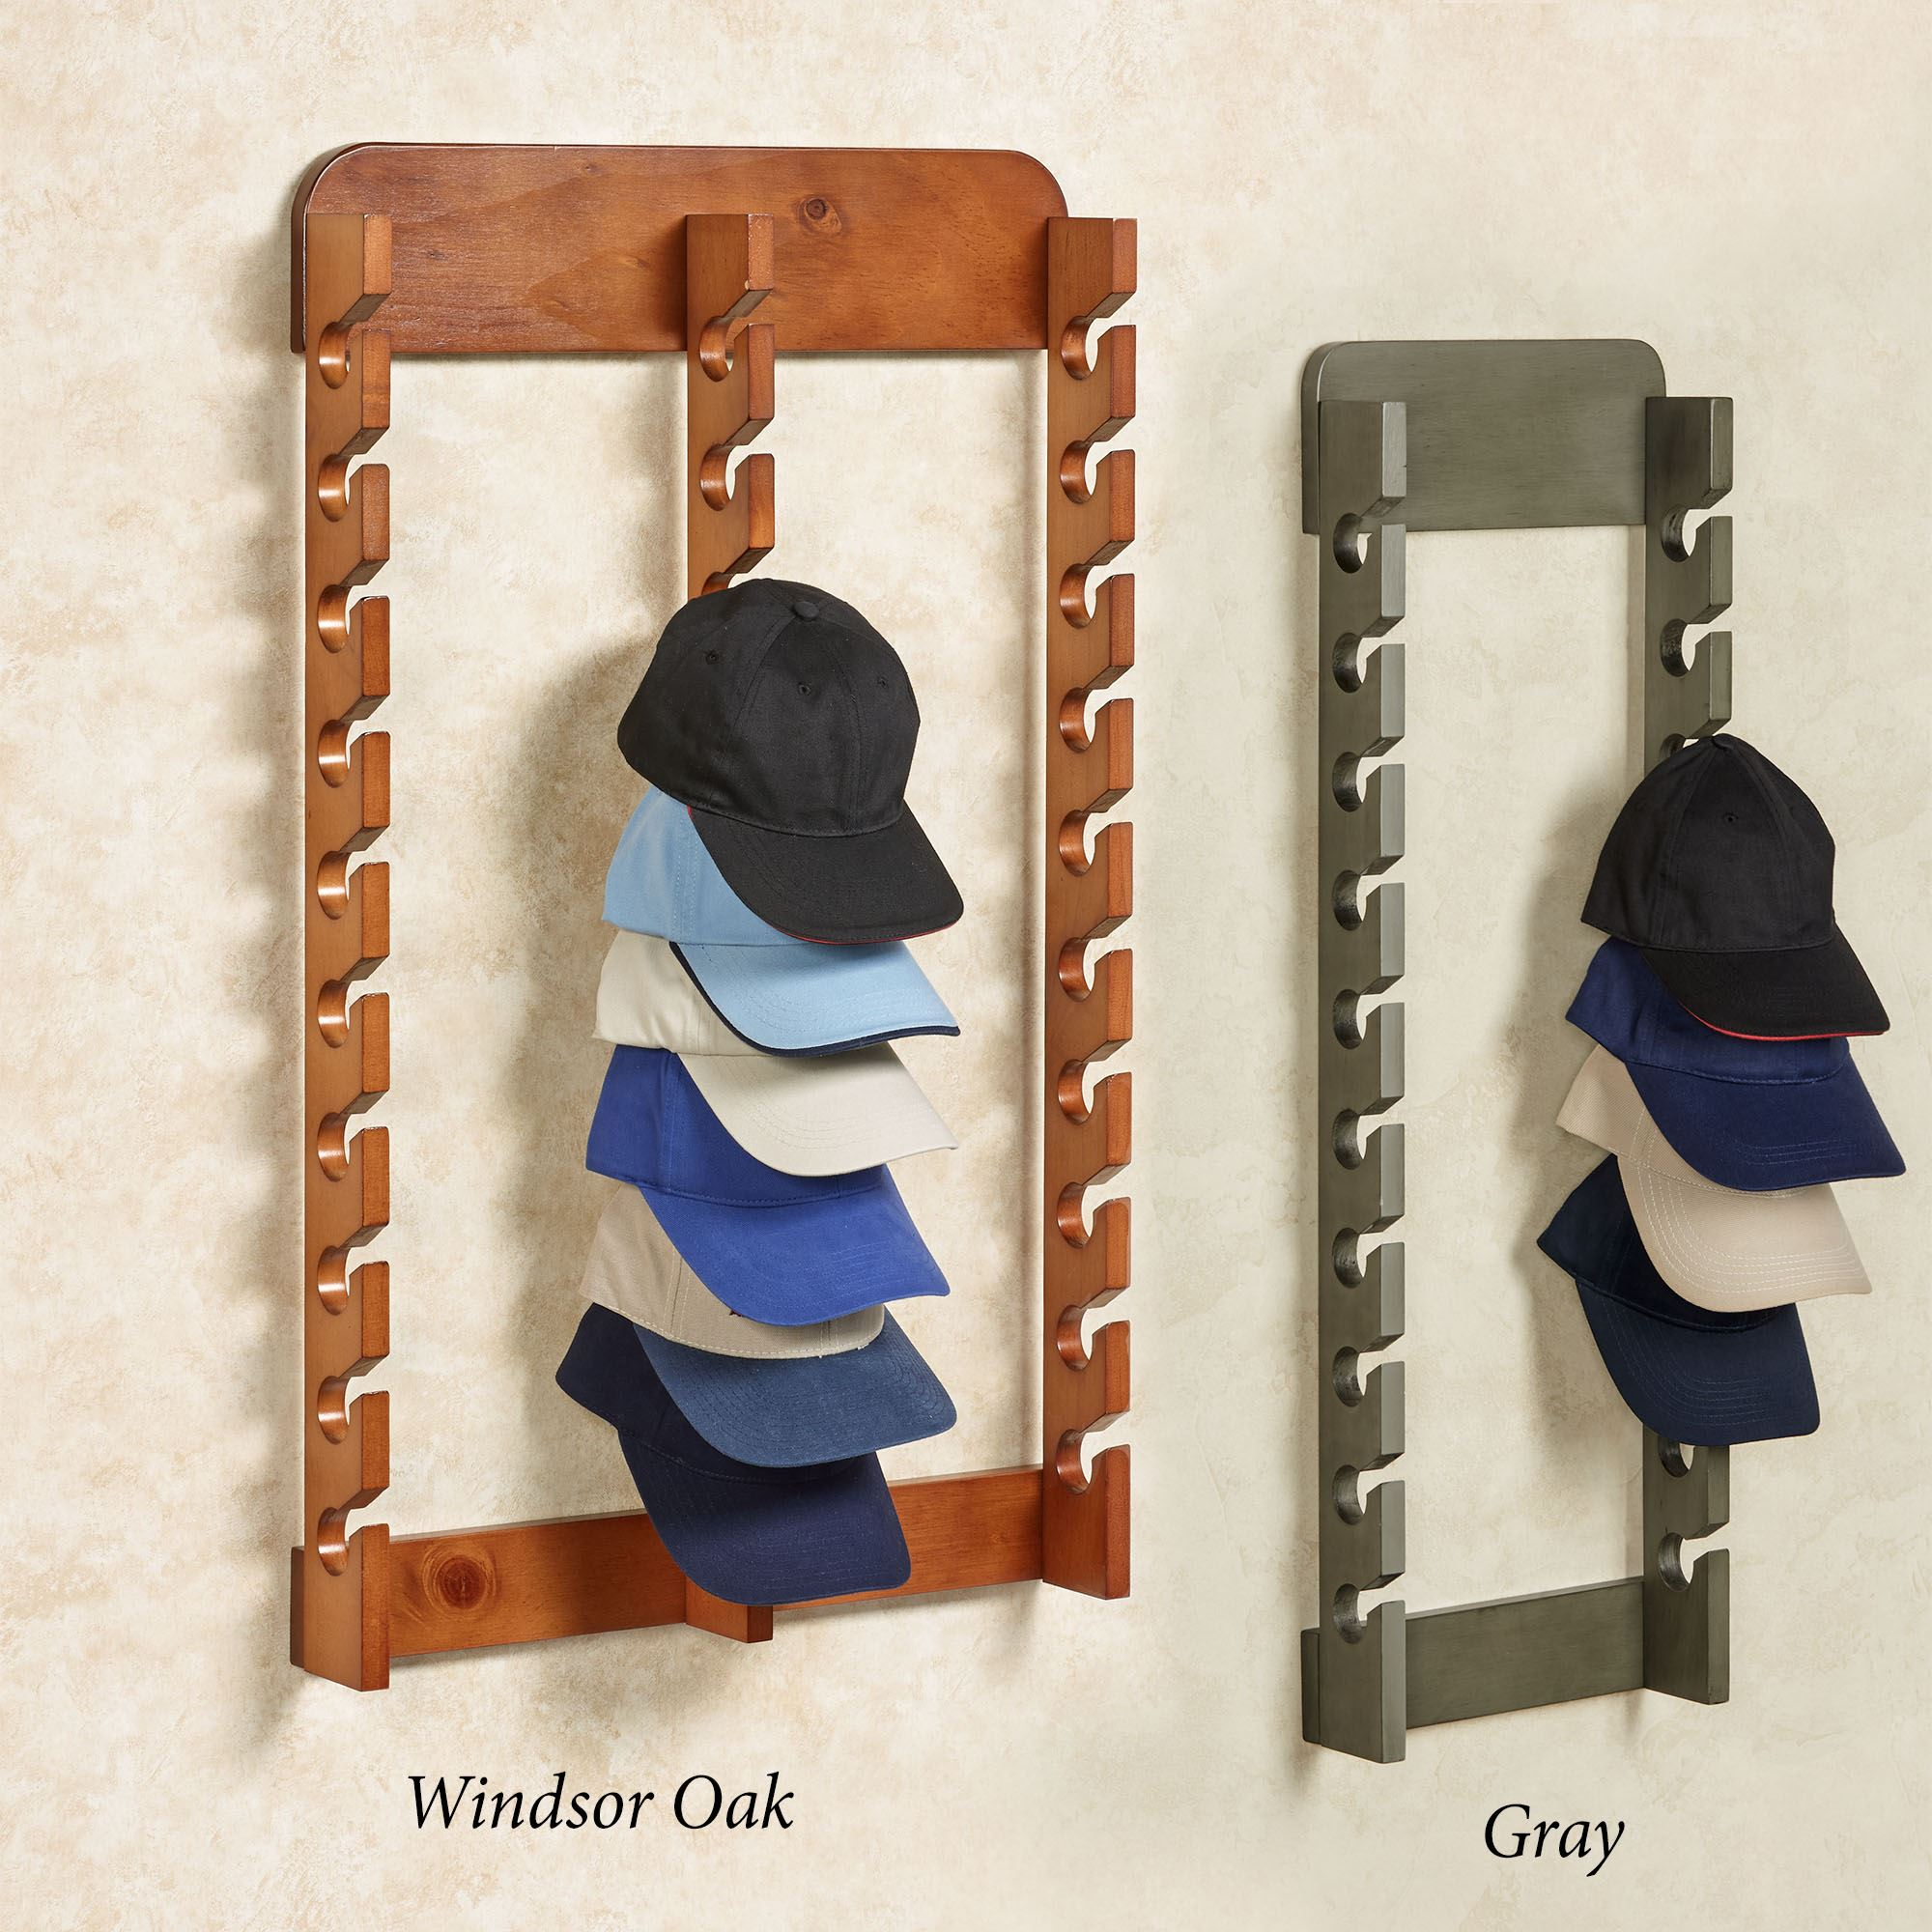 Wood Cap Display Wall Rack Holds Up To 30 Hats